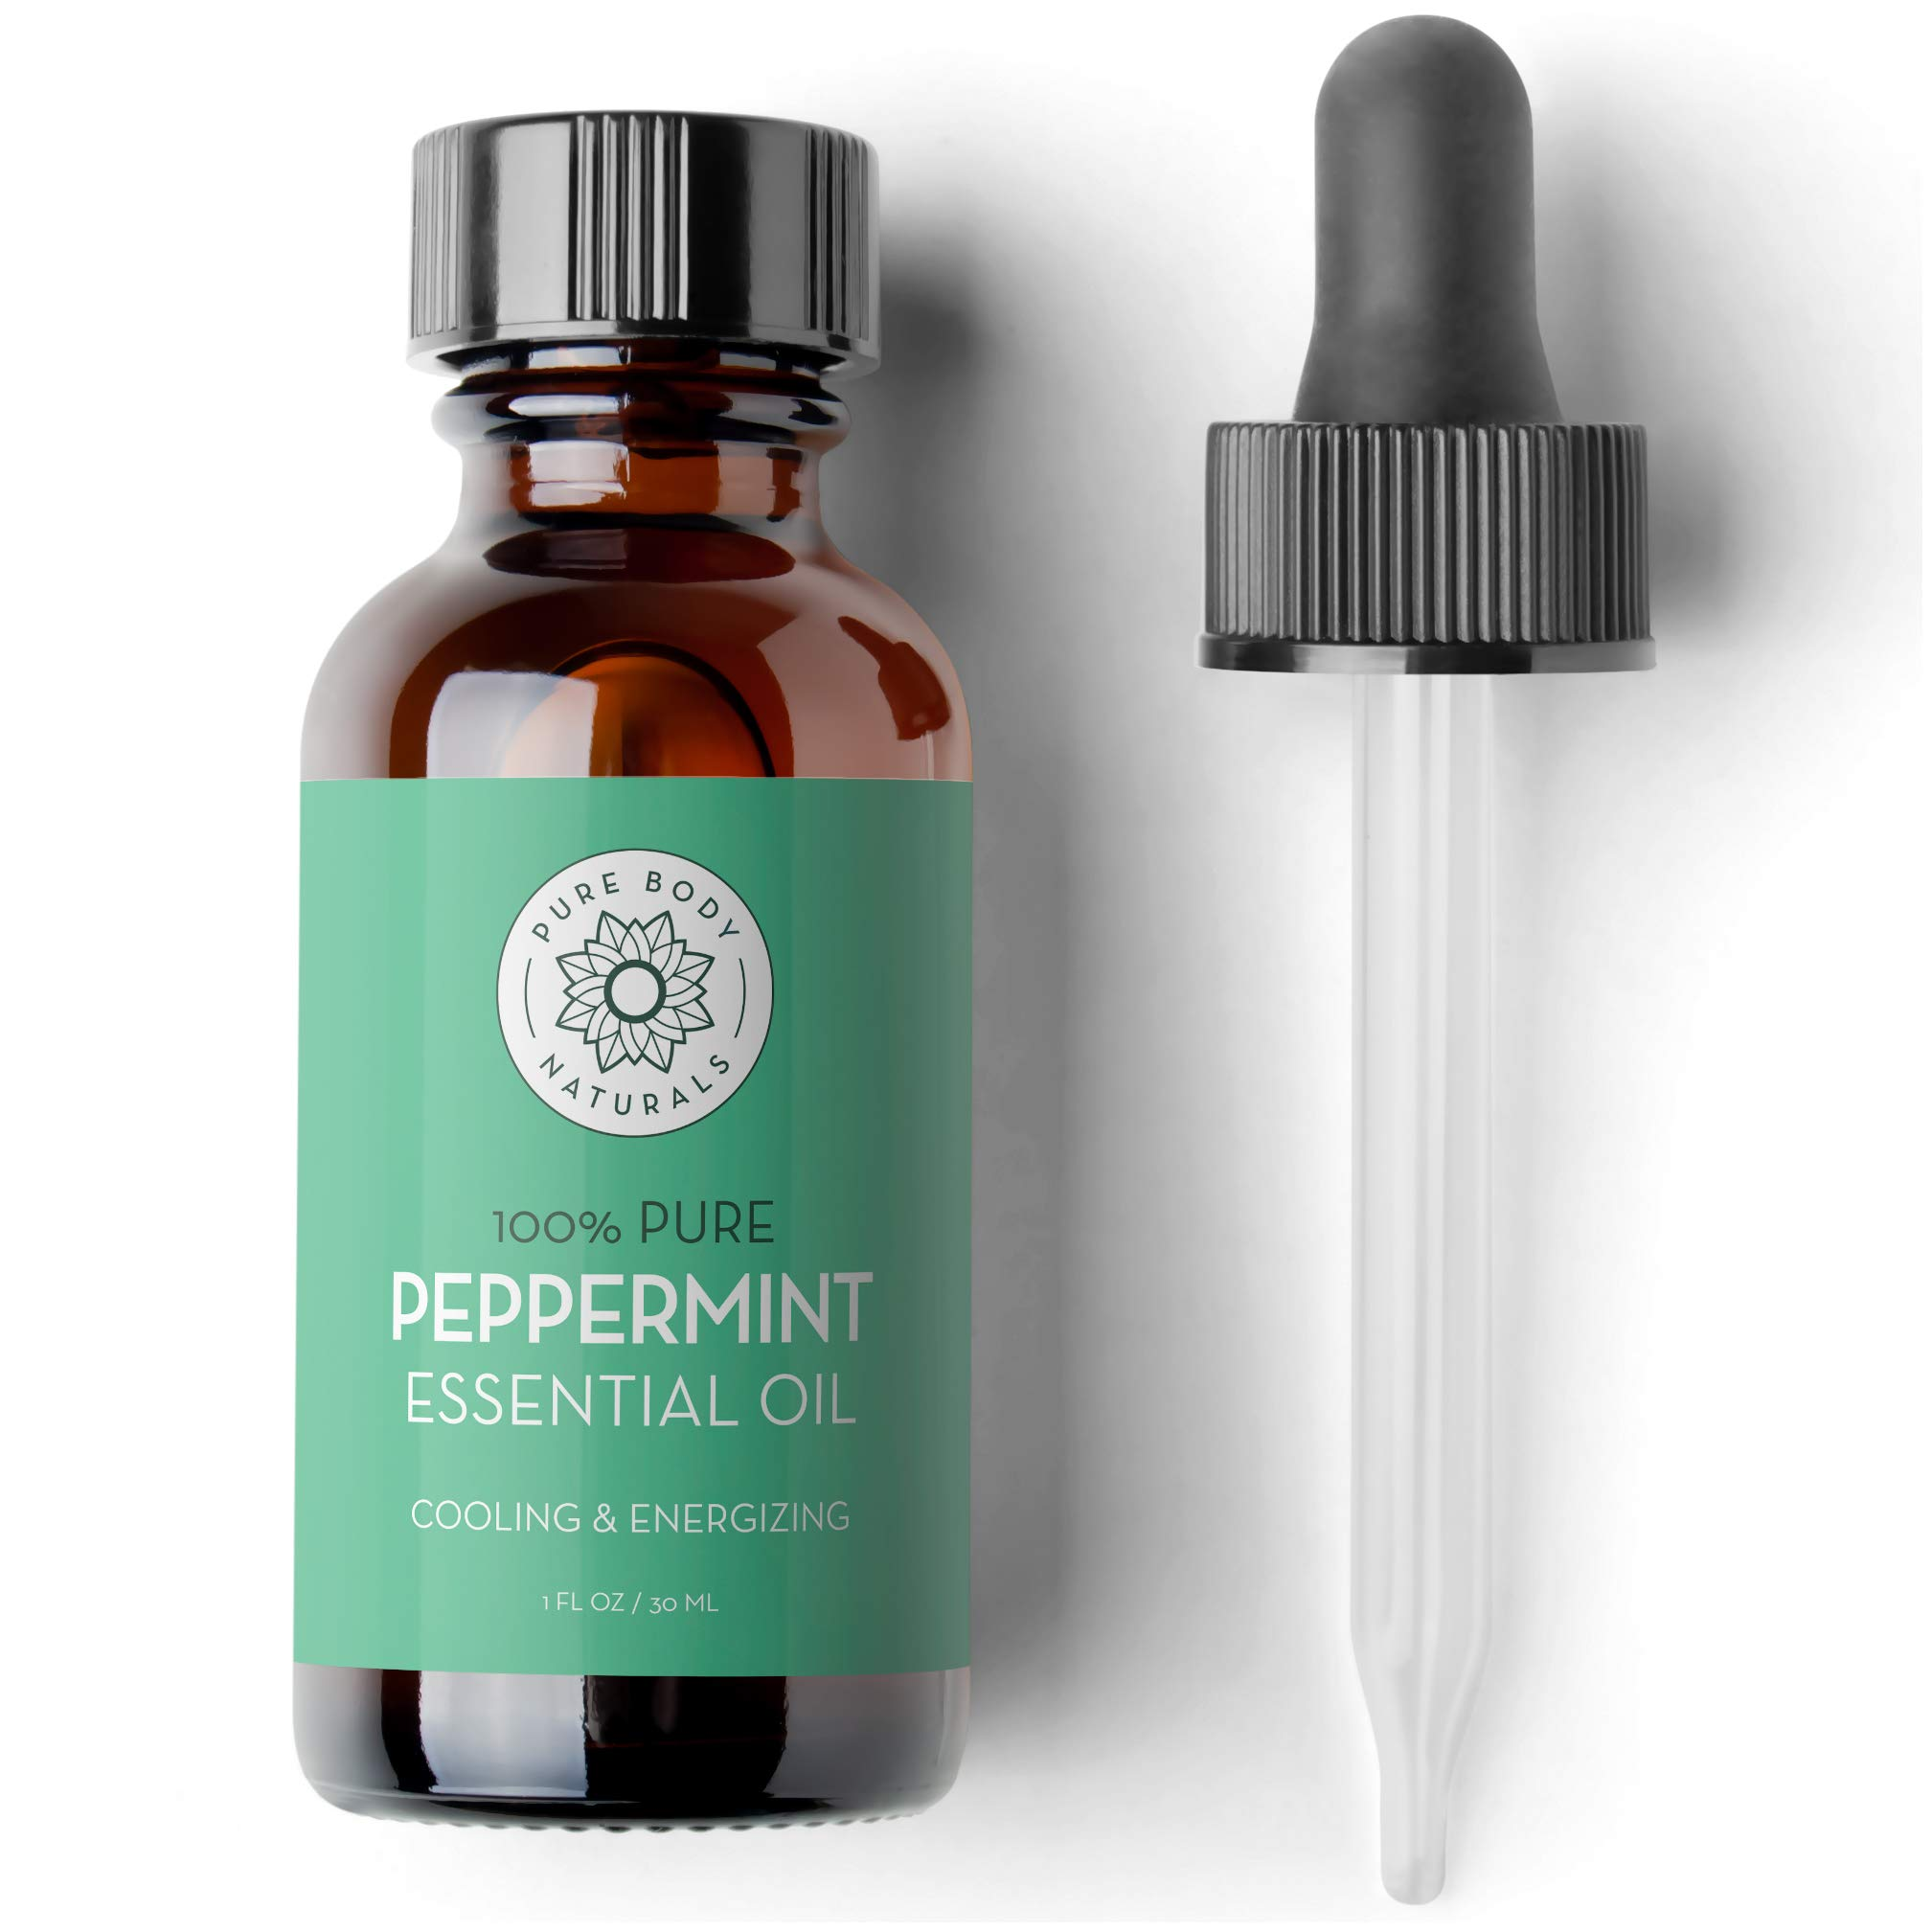 Peppermint Essential Oil, 1 Fluid Ounce - 100% Pure and Undiluted, Therapeutic Grade Aromatherapy Oil for Diffuser, Relaxation, Focus, Pain Relief - by Pure Body Naturals